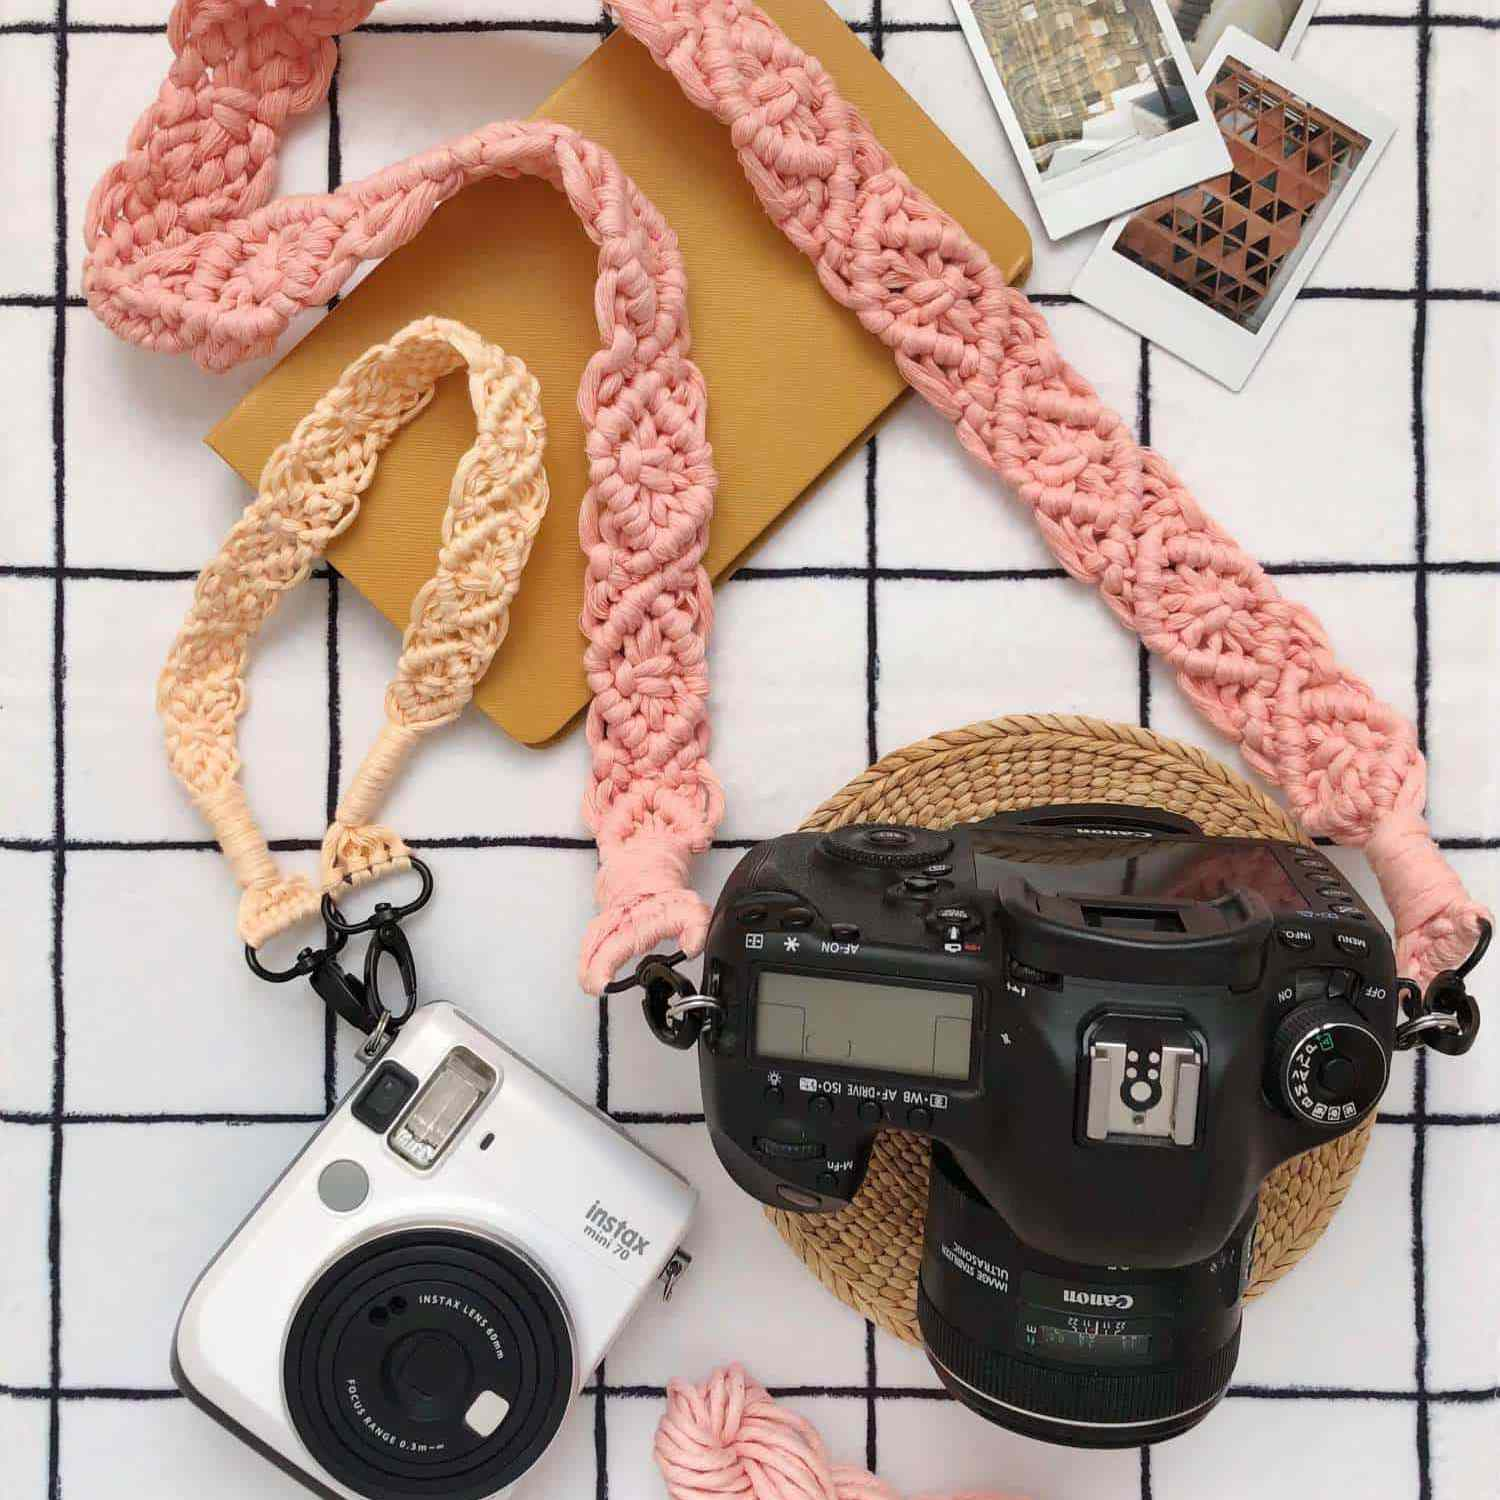 Two cameras with colorful macramé straps